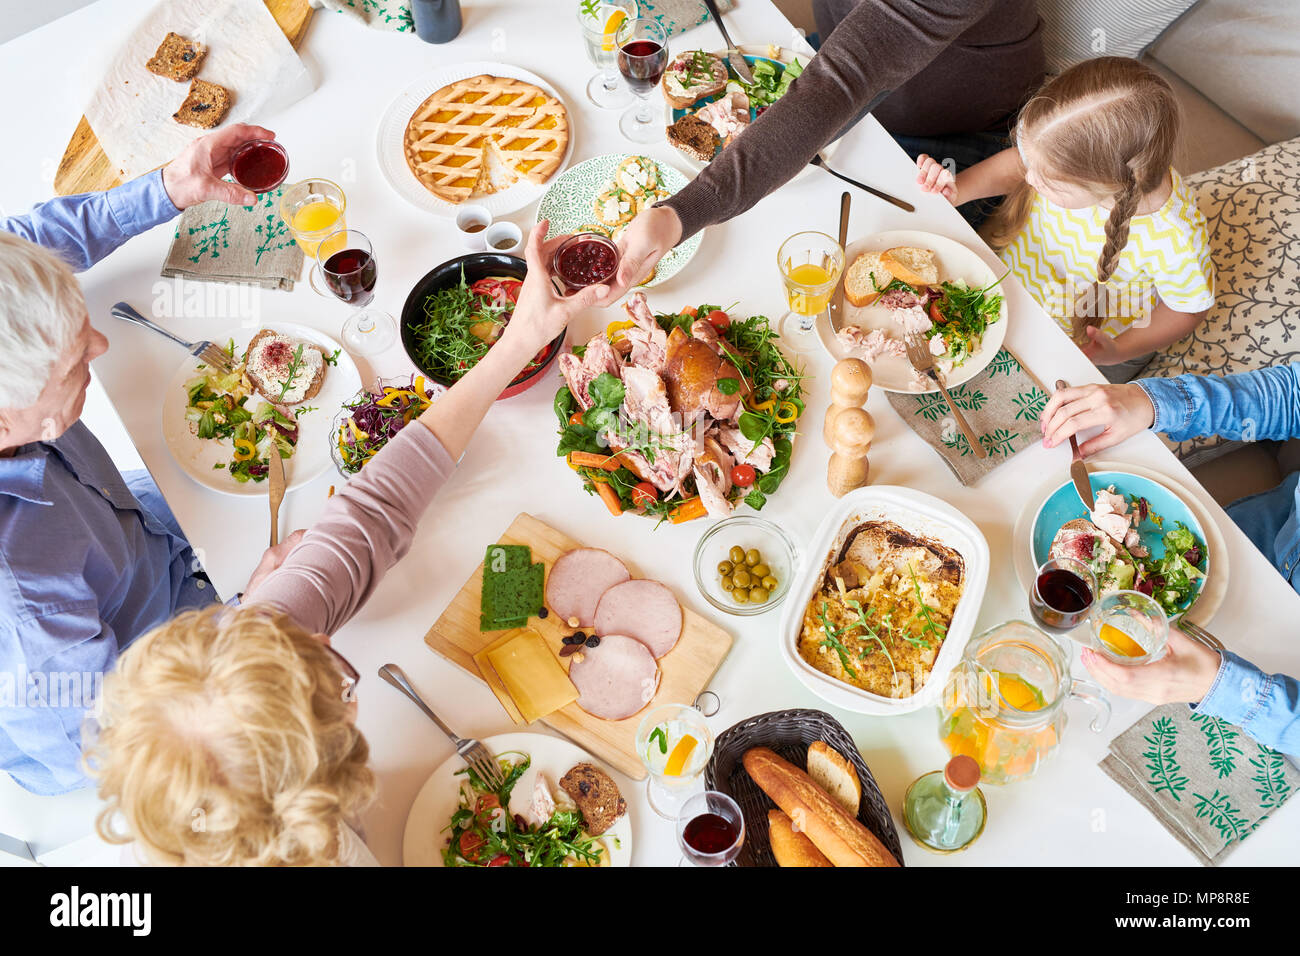 Above View of Family Dinner - Stock Image